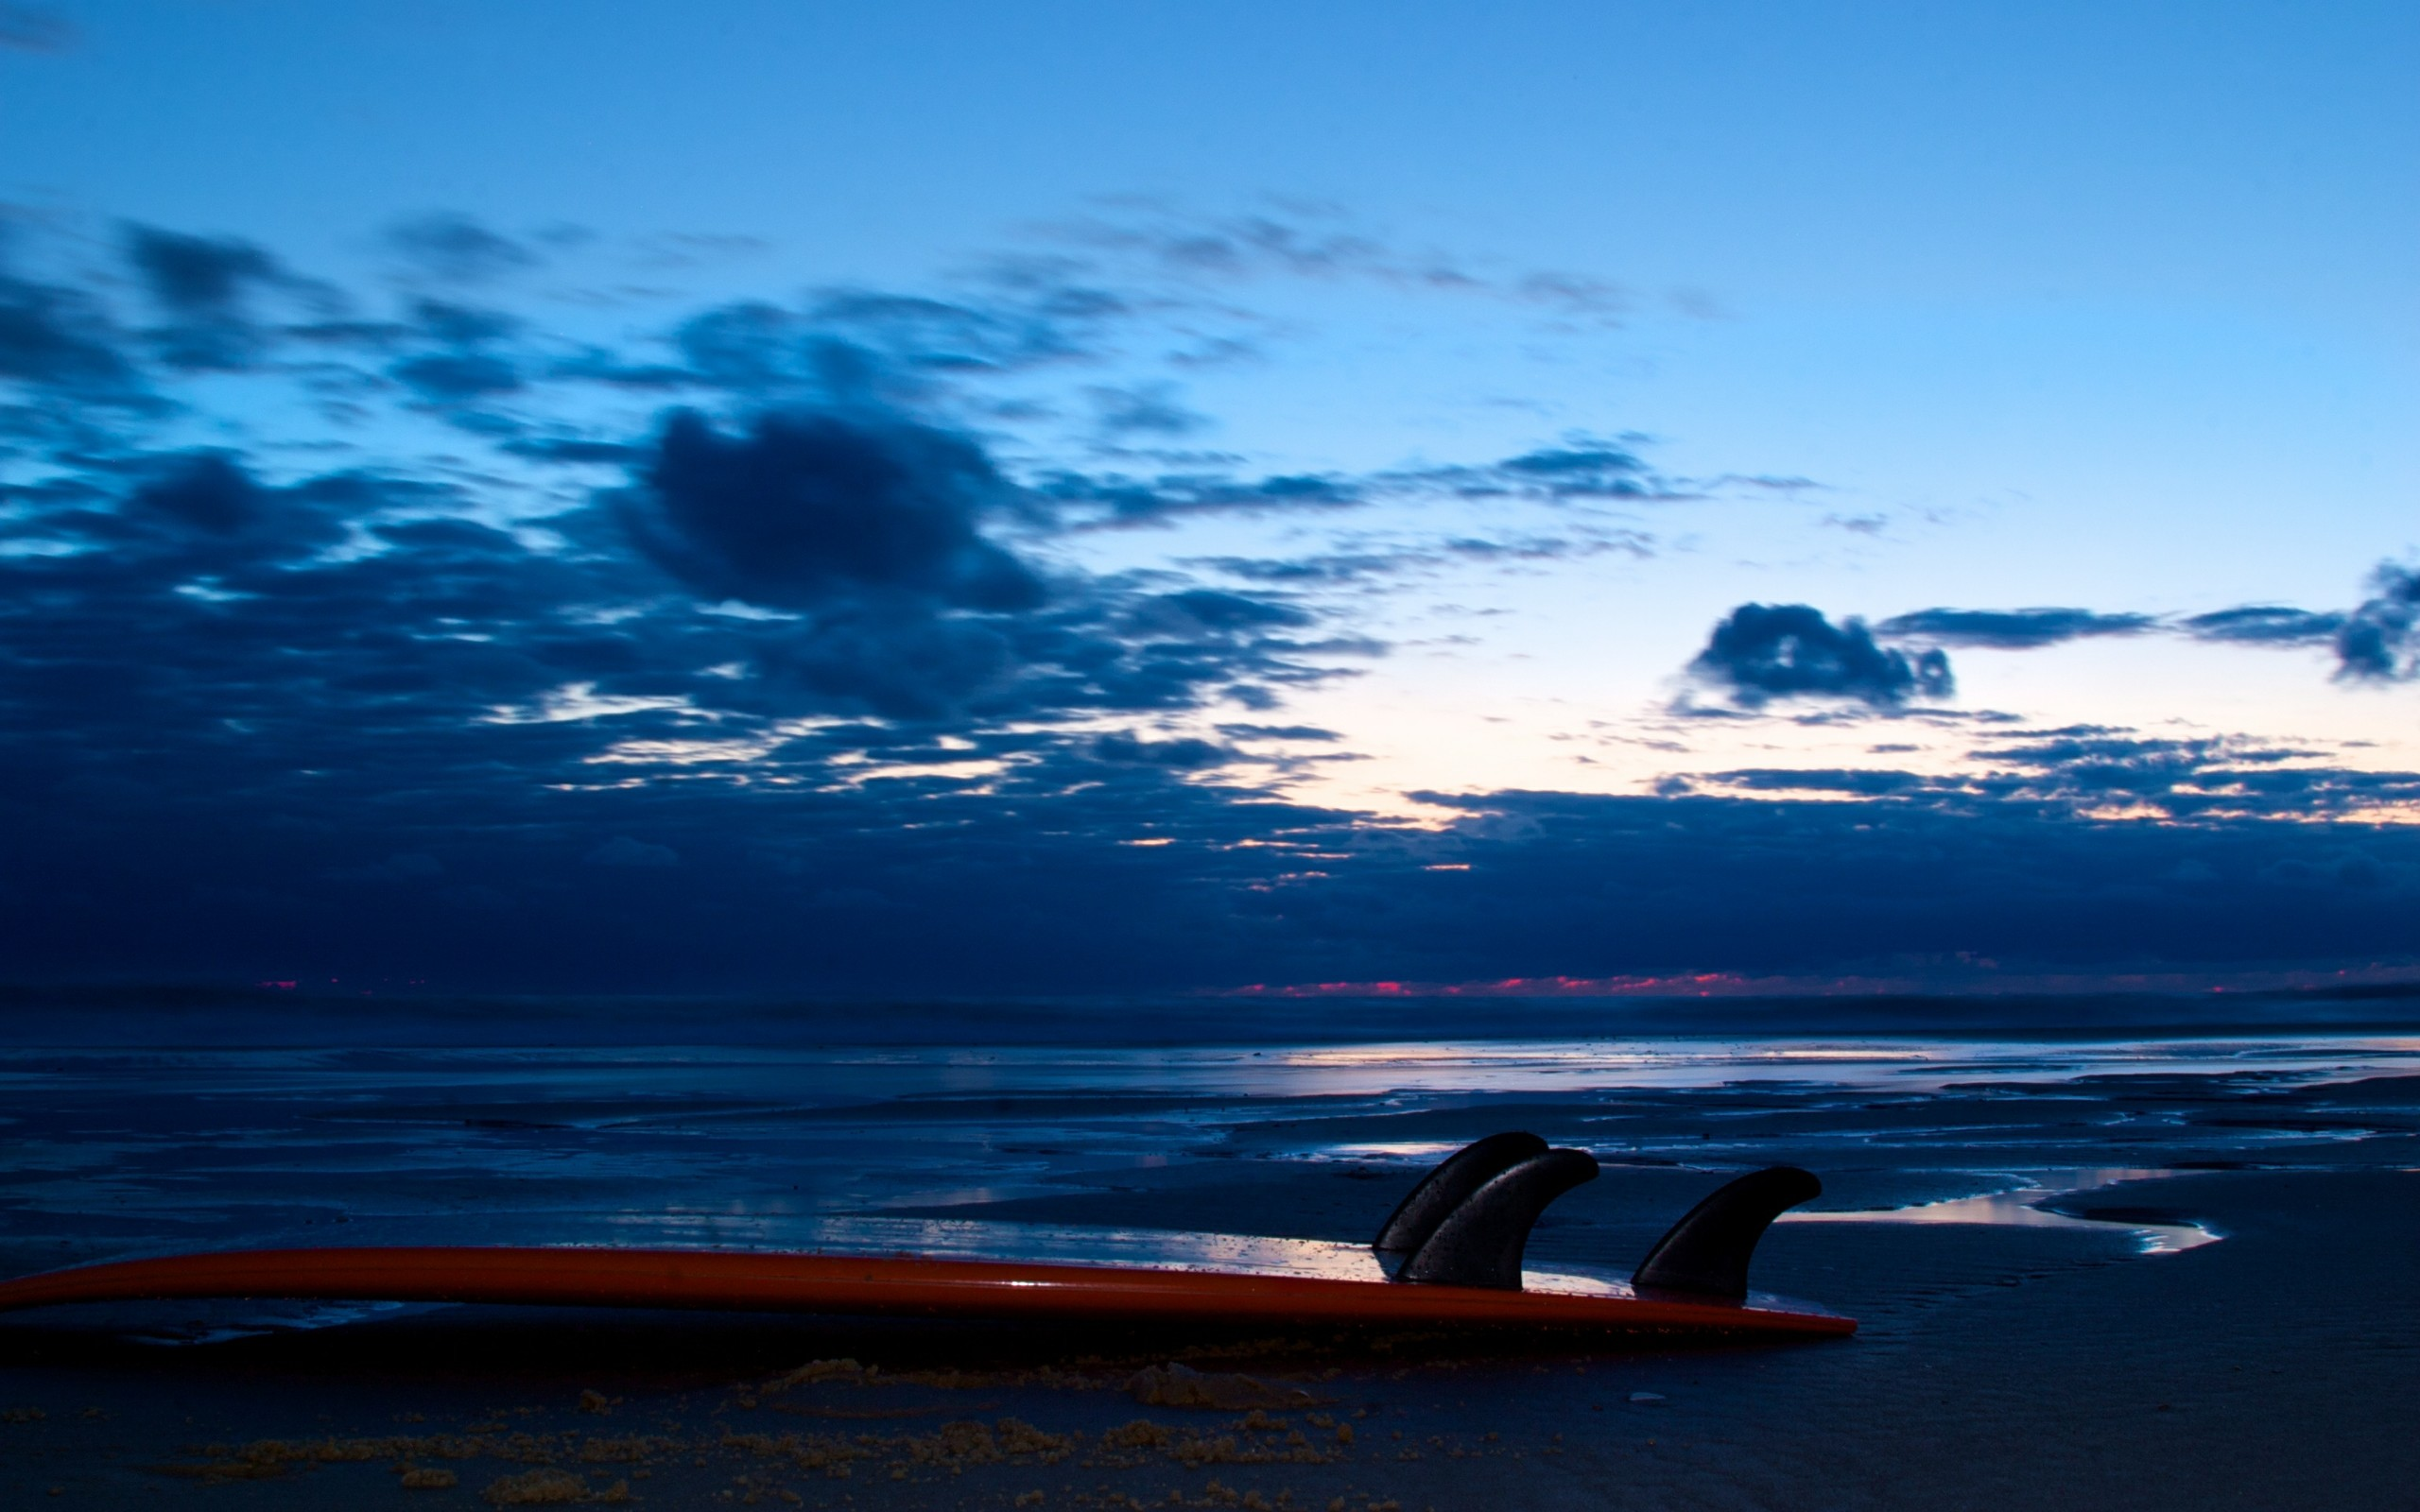 Surfing Wide Wallpaper – Wallpaper, High Definition, High Quality .